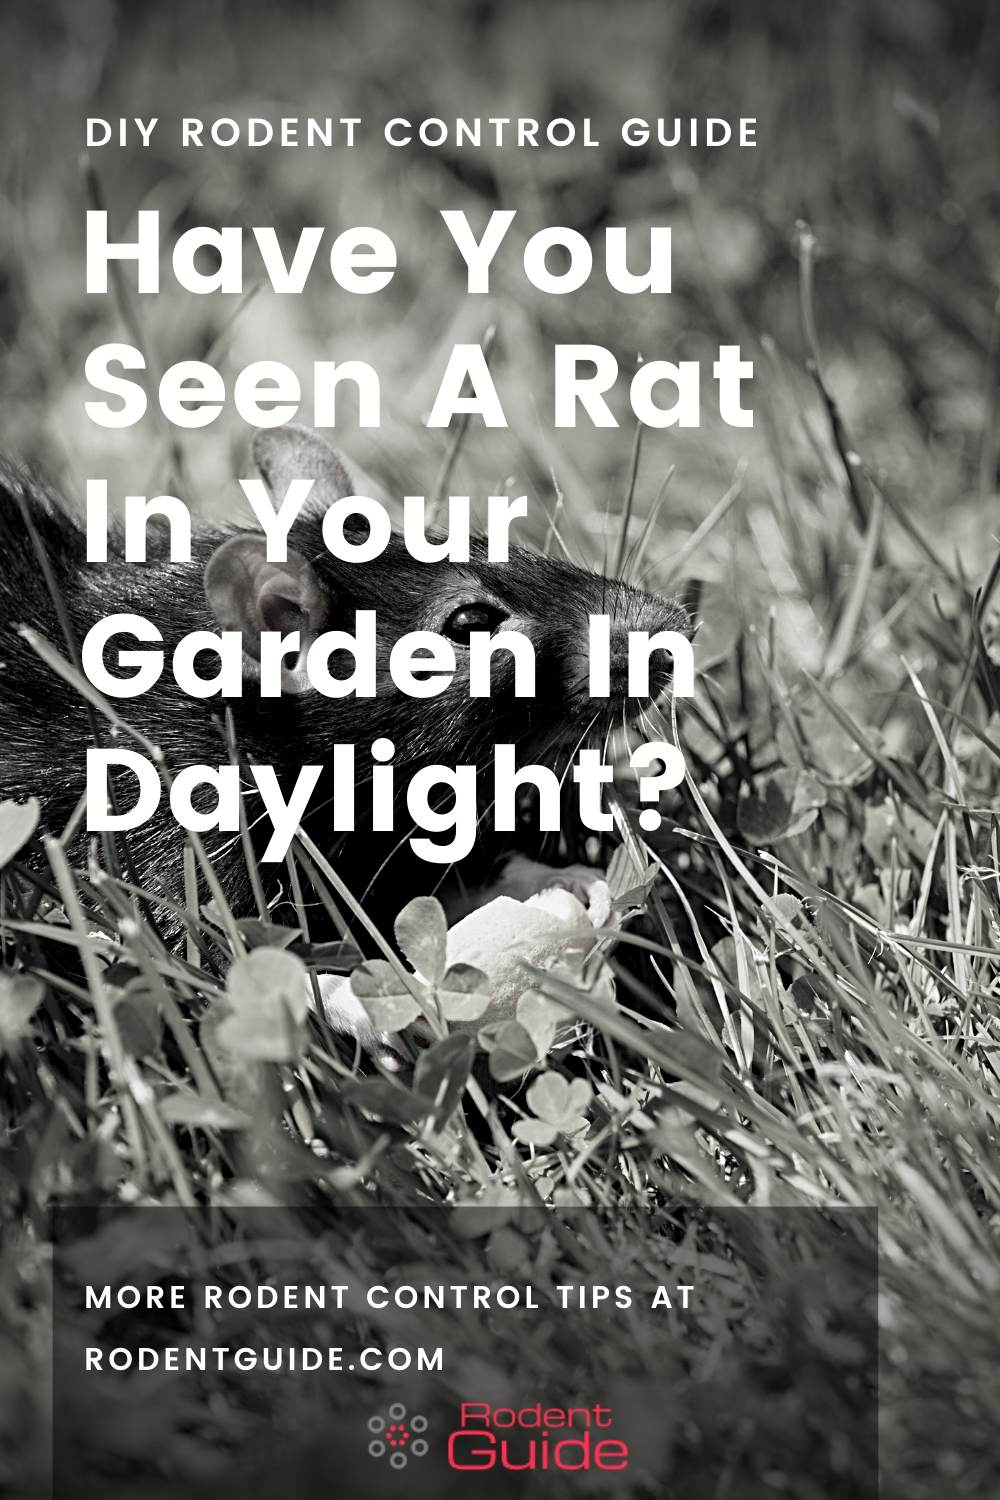 Have You Seen A Rat In Your Garden In Daylight